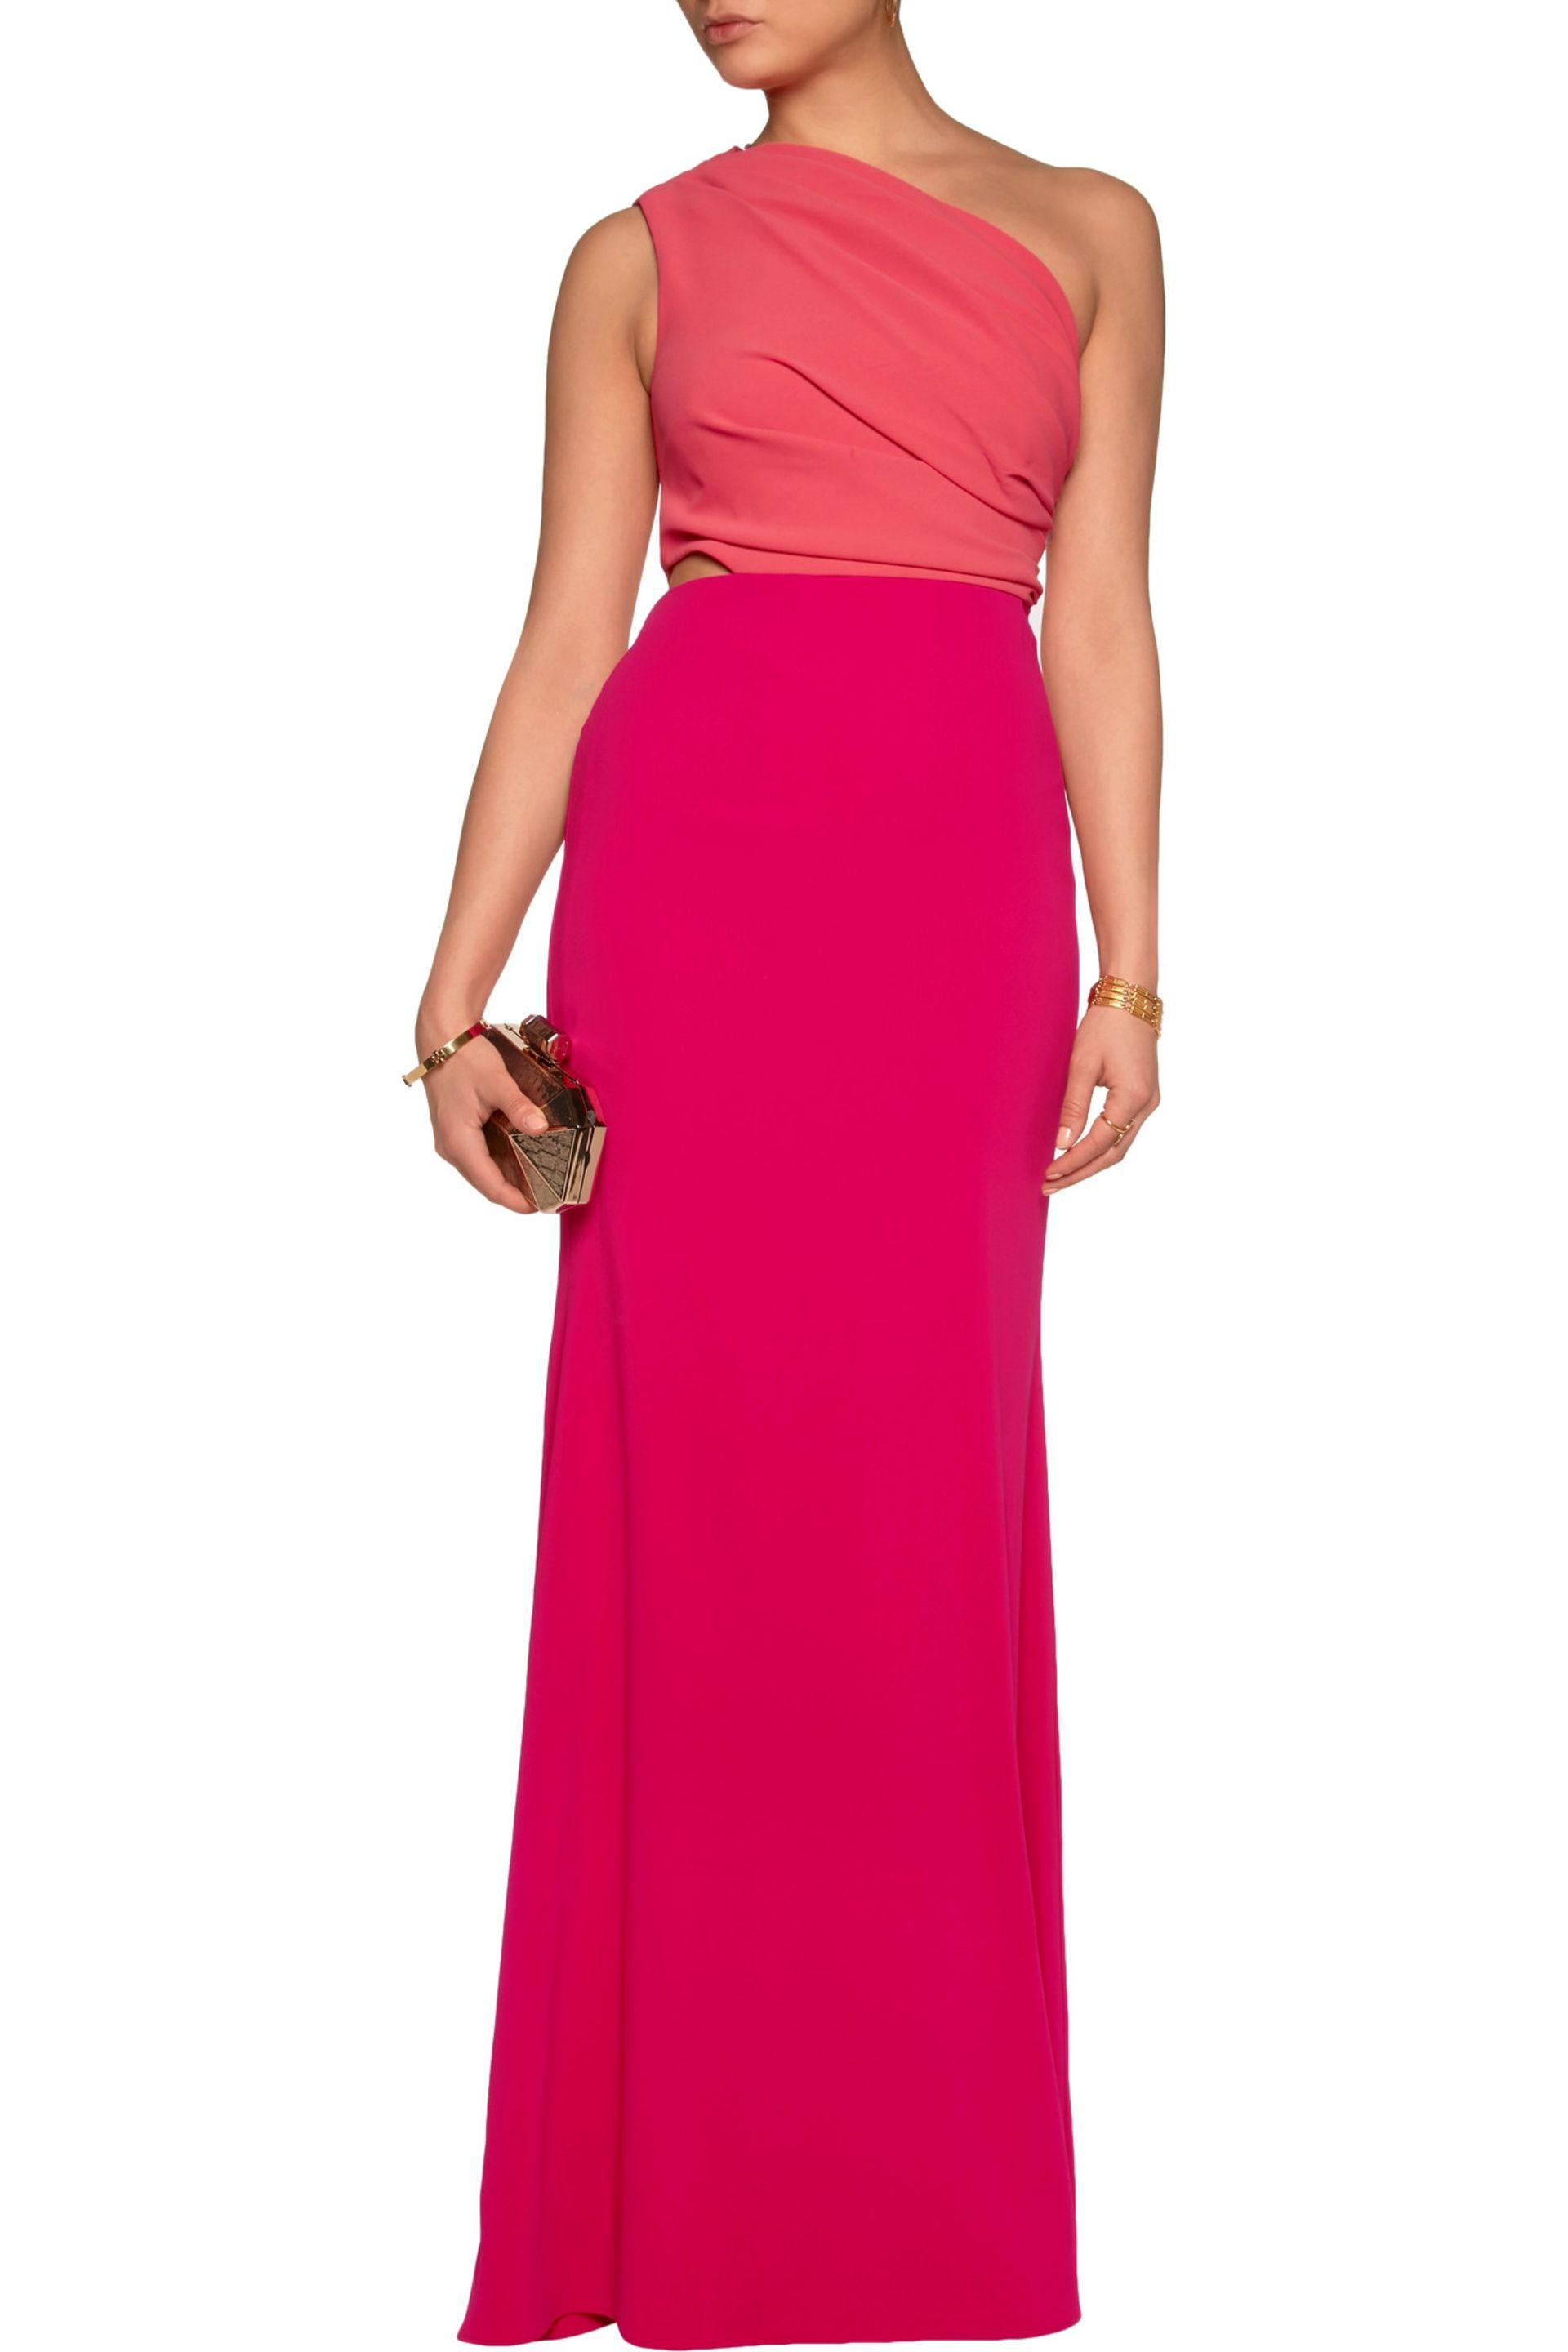 Badgley Mischka Synthetic One-shoulder Two-tone Crepe De Chine Gown Fuchsia in Pink